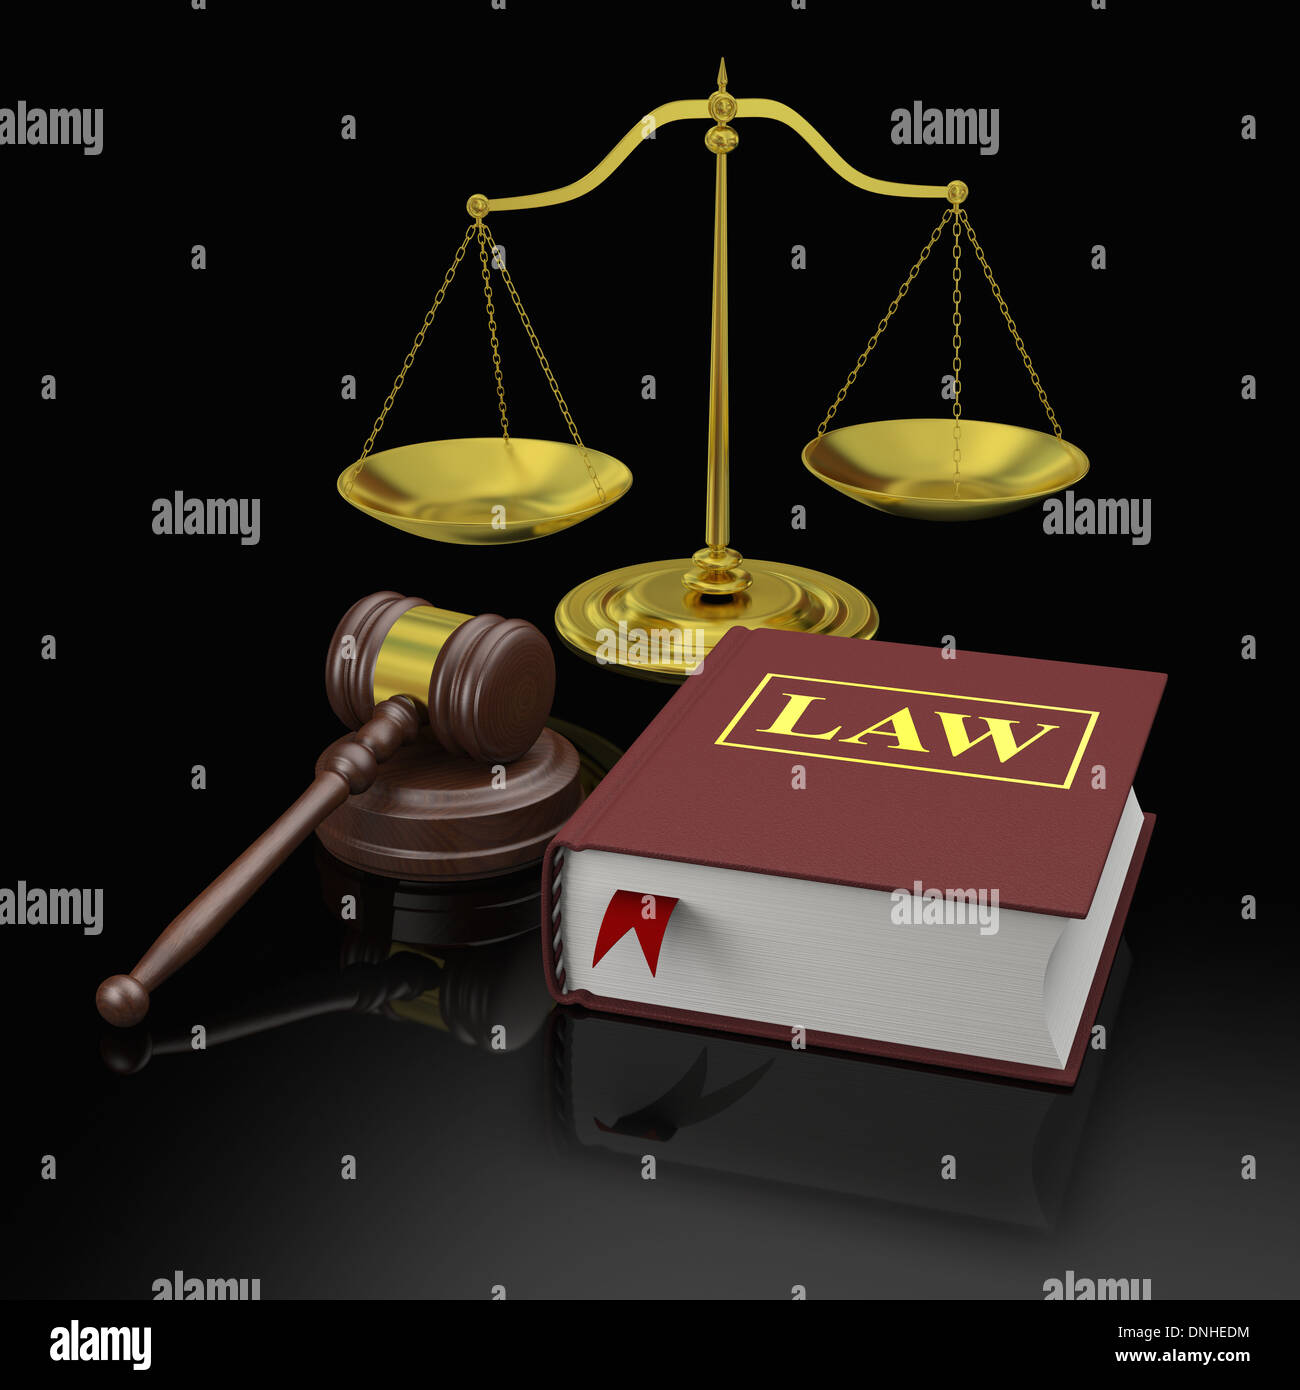 Gavel, scale and law books, symbols of law and legal education - Stock Image